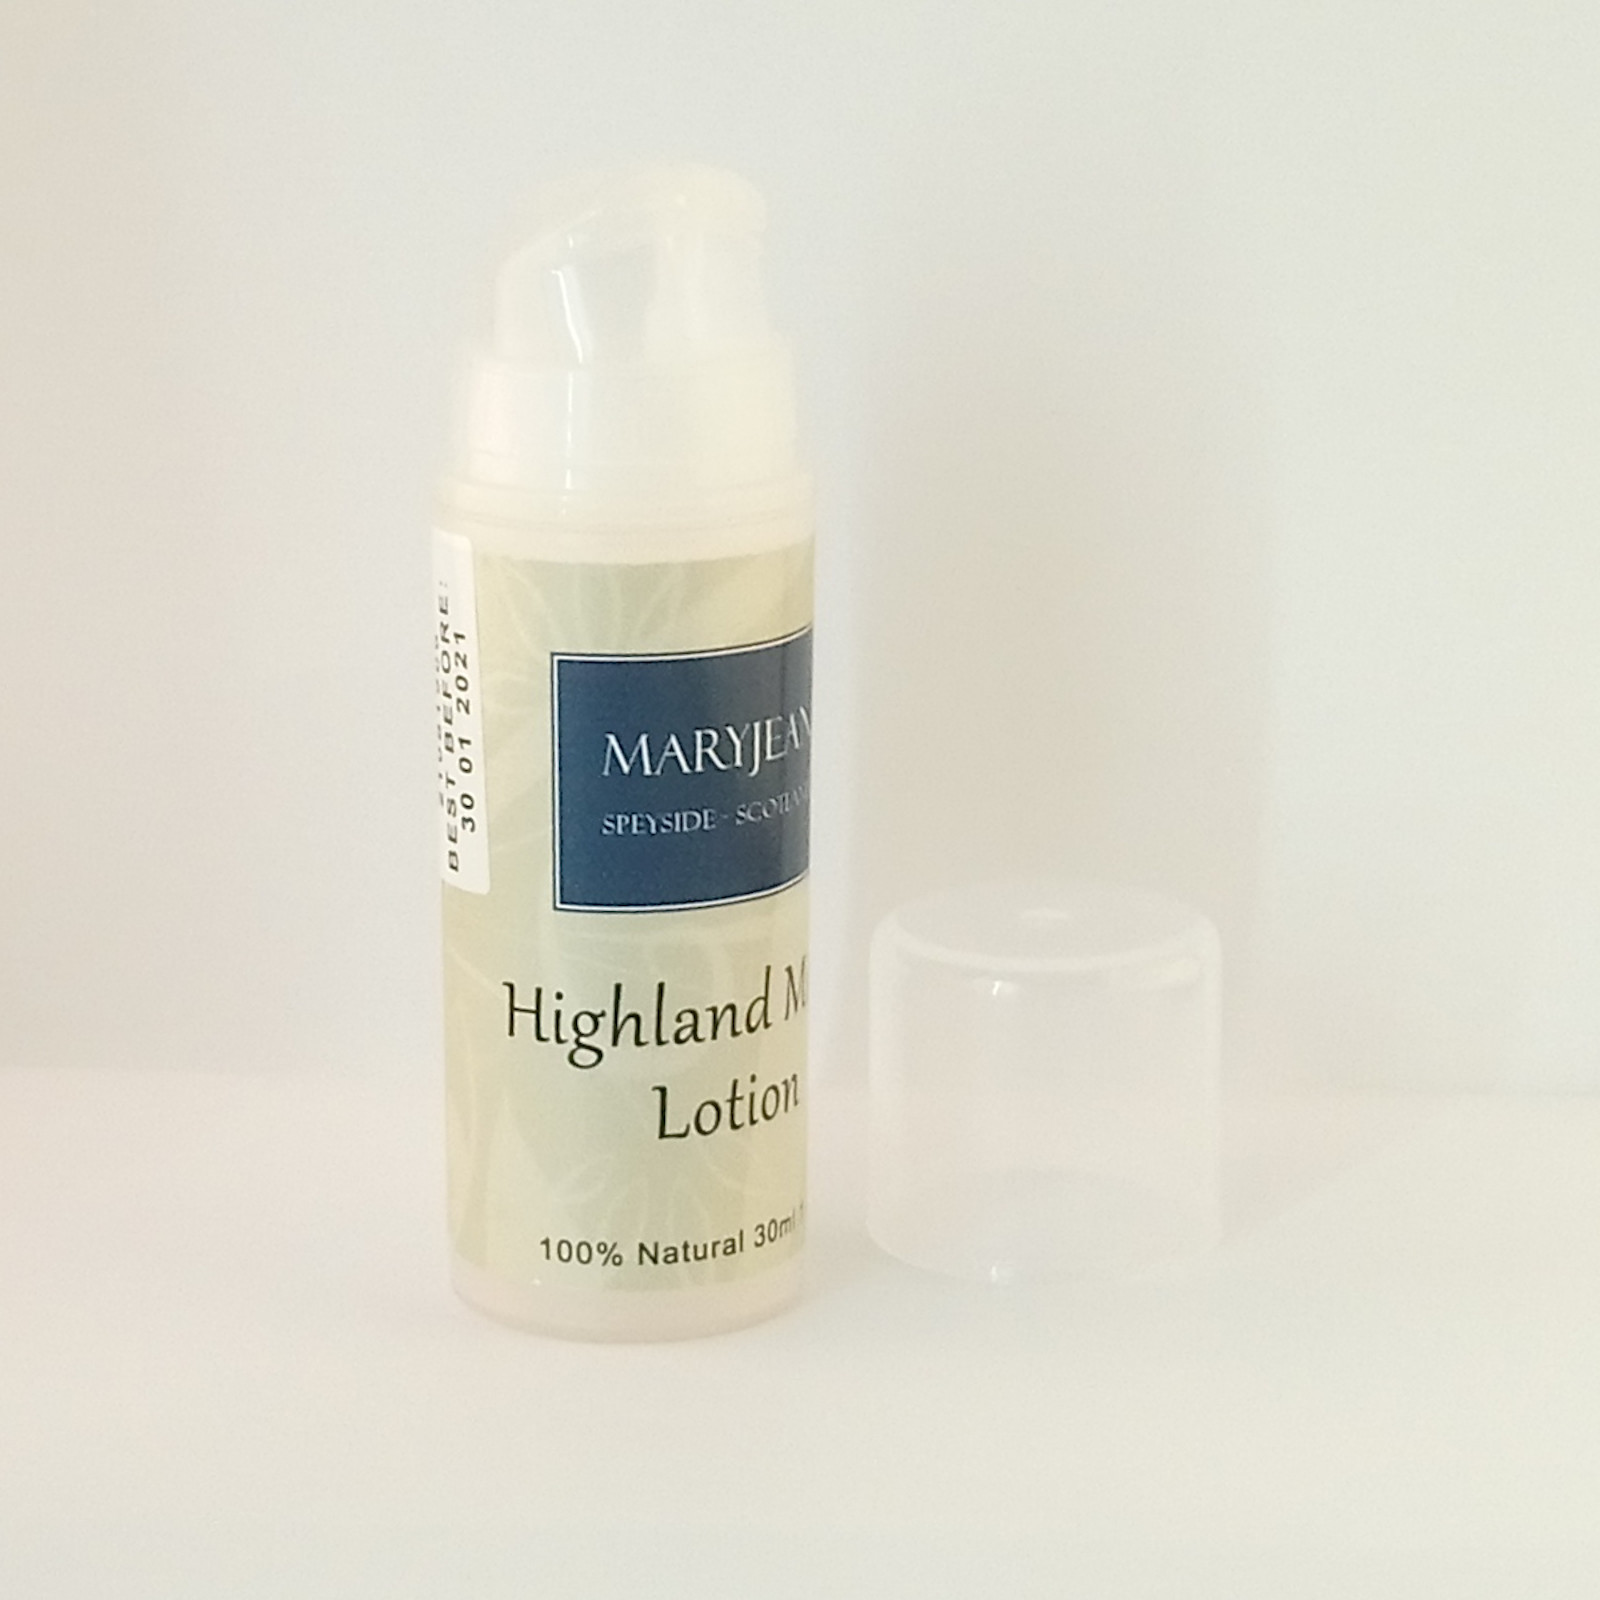 Highland Midge Weekend Camping Travel Insect Repellent Lotion With Jojoba